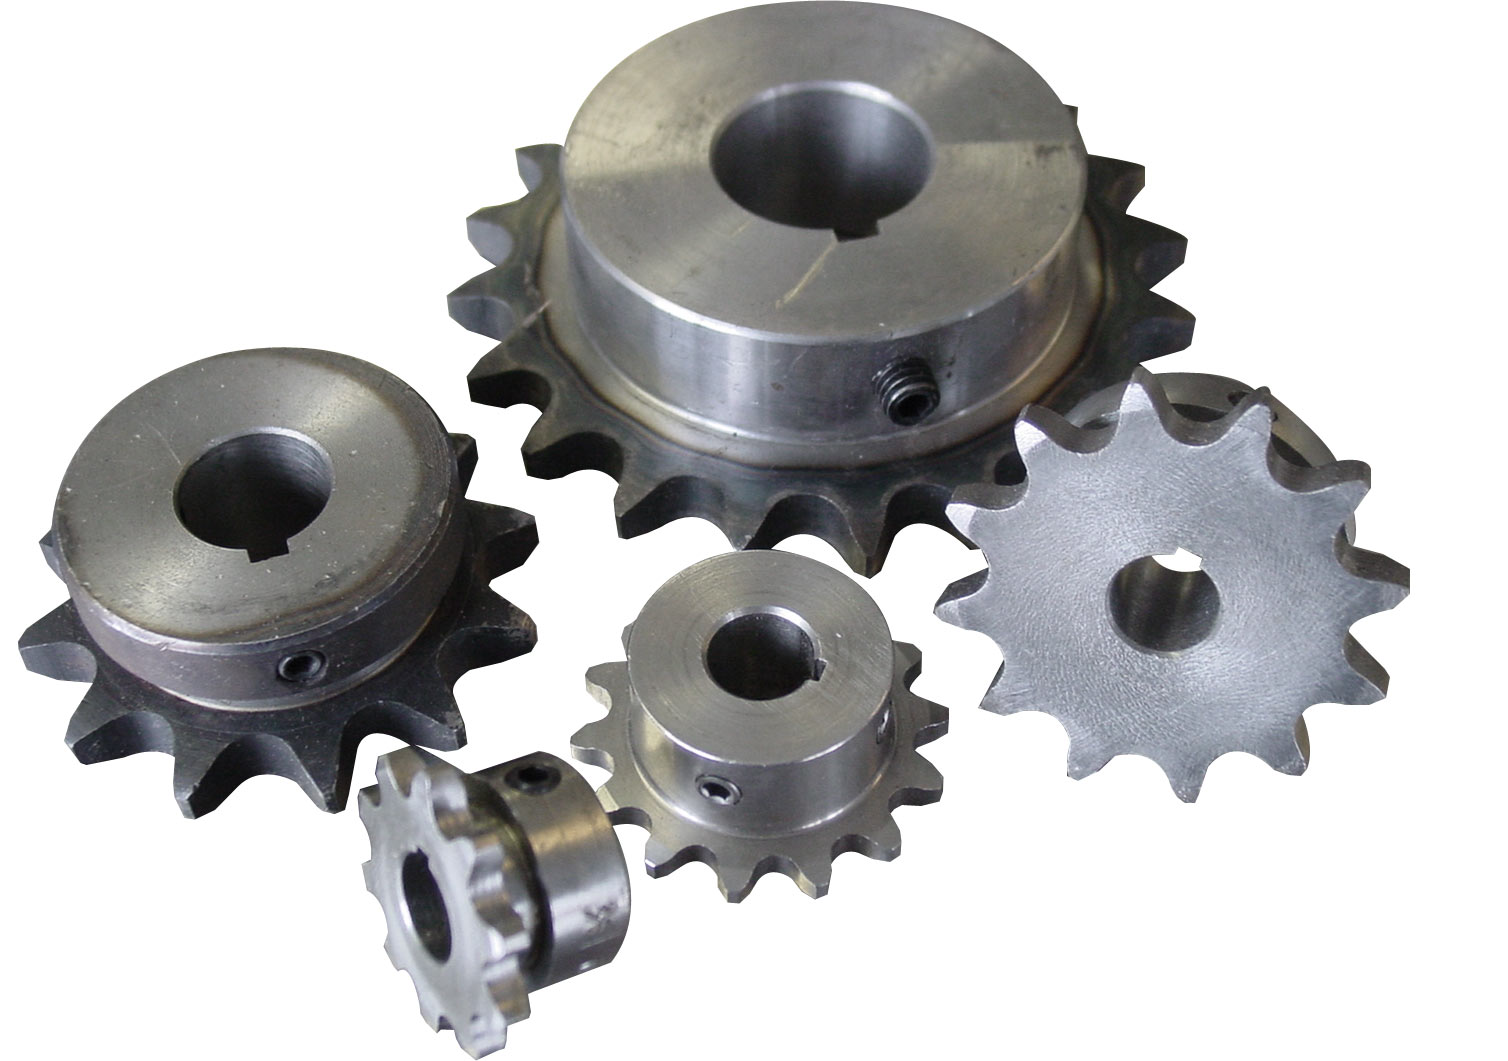 1/2 pitch Type B Sprocket - 15 teeth, 1-1/8 inch bore